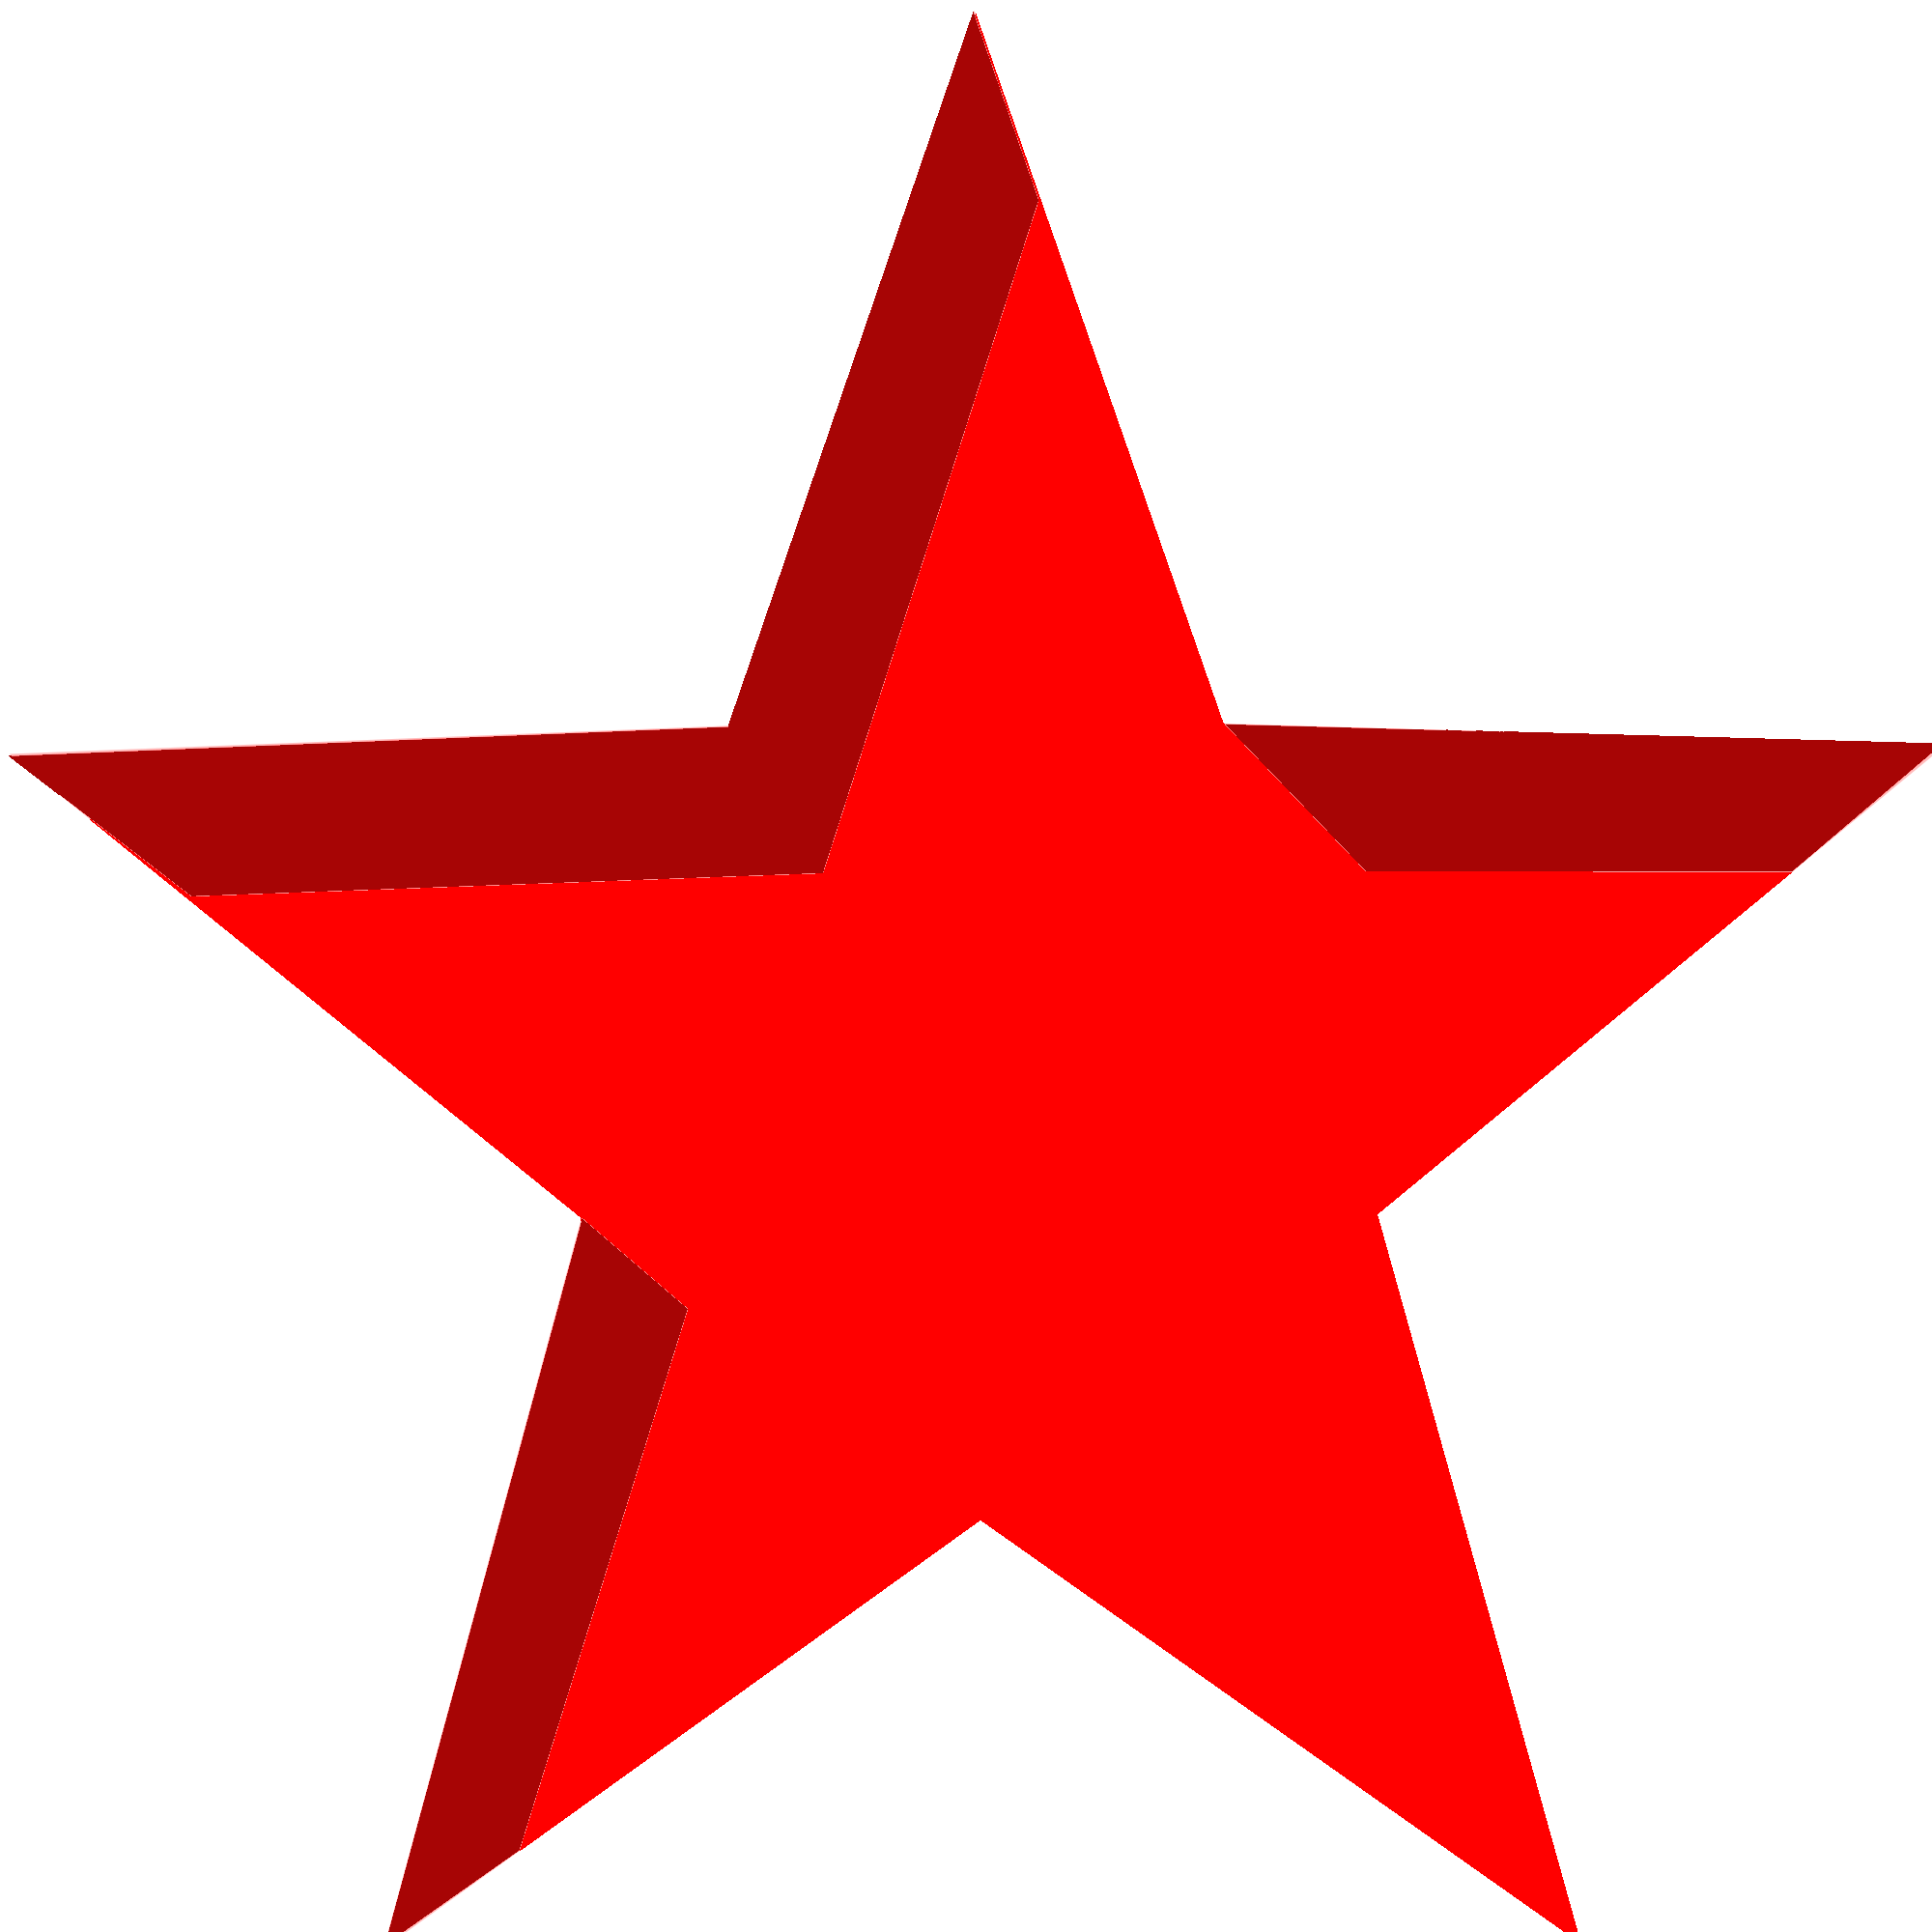 Star PNG images Download